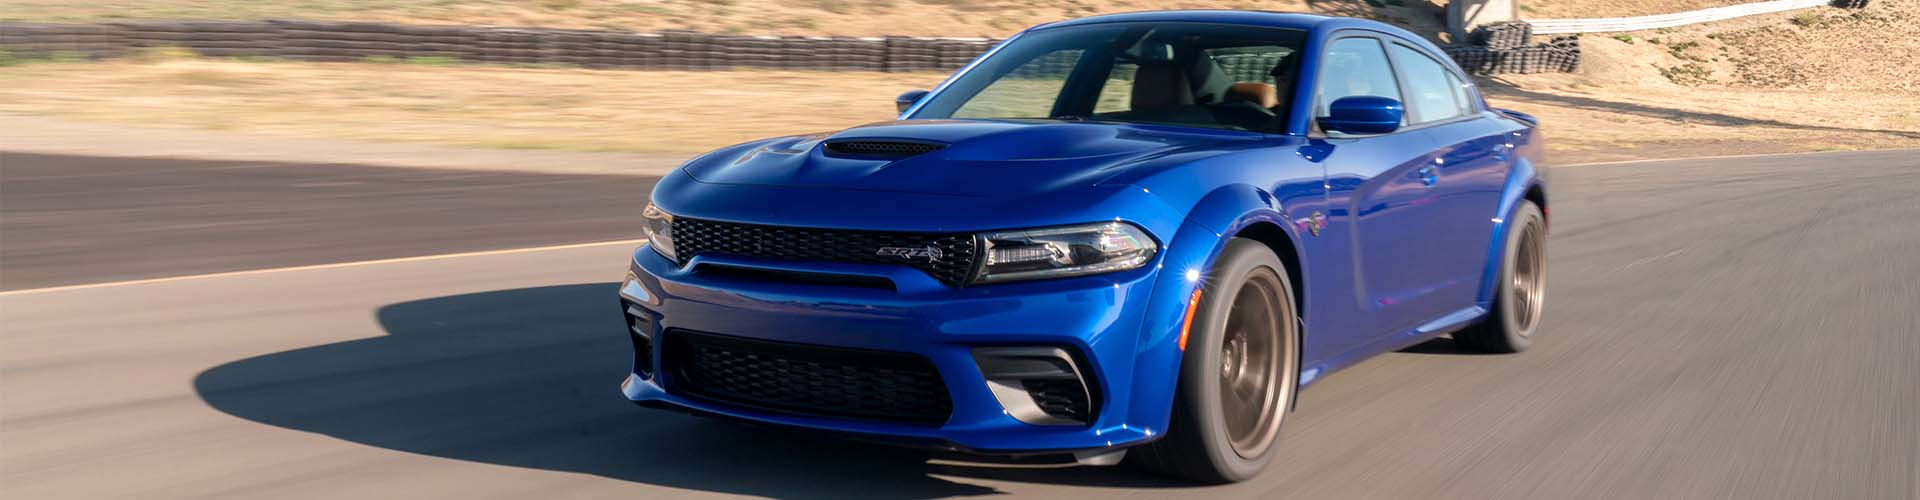 dodge charger scat pack gas type 1 Dodge Charger  Overview – AEC Europe